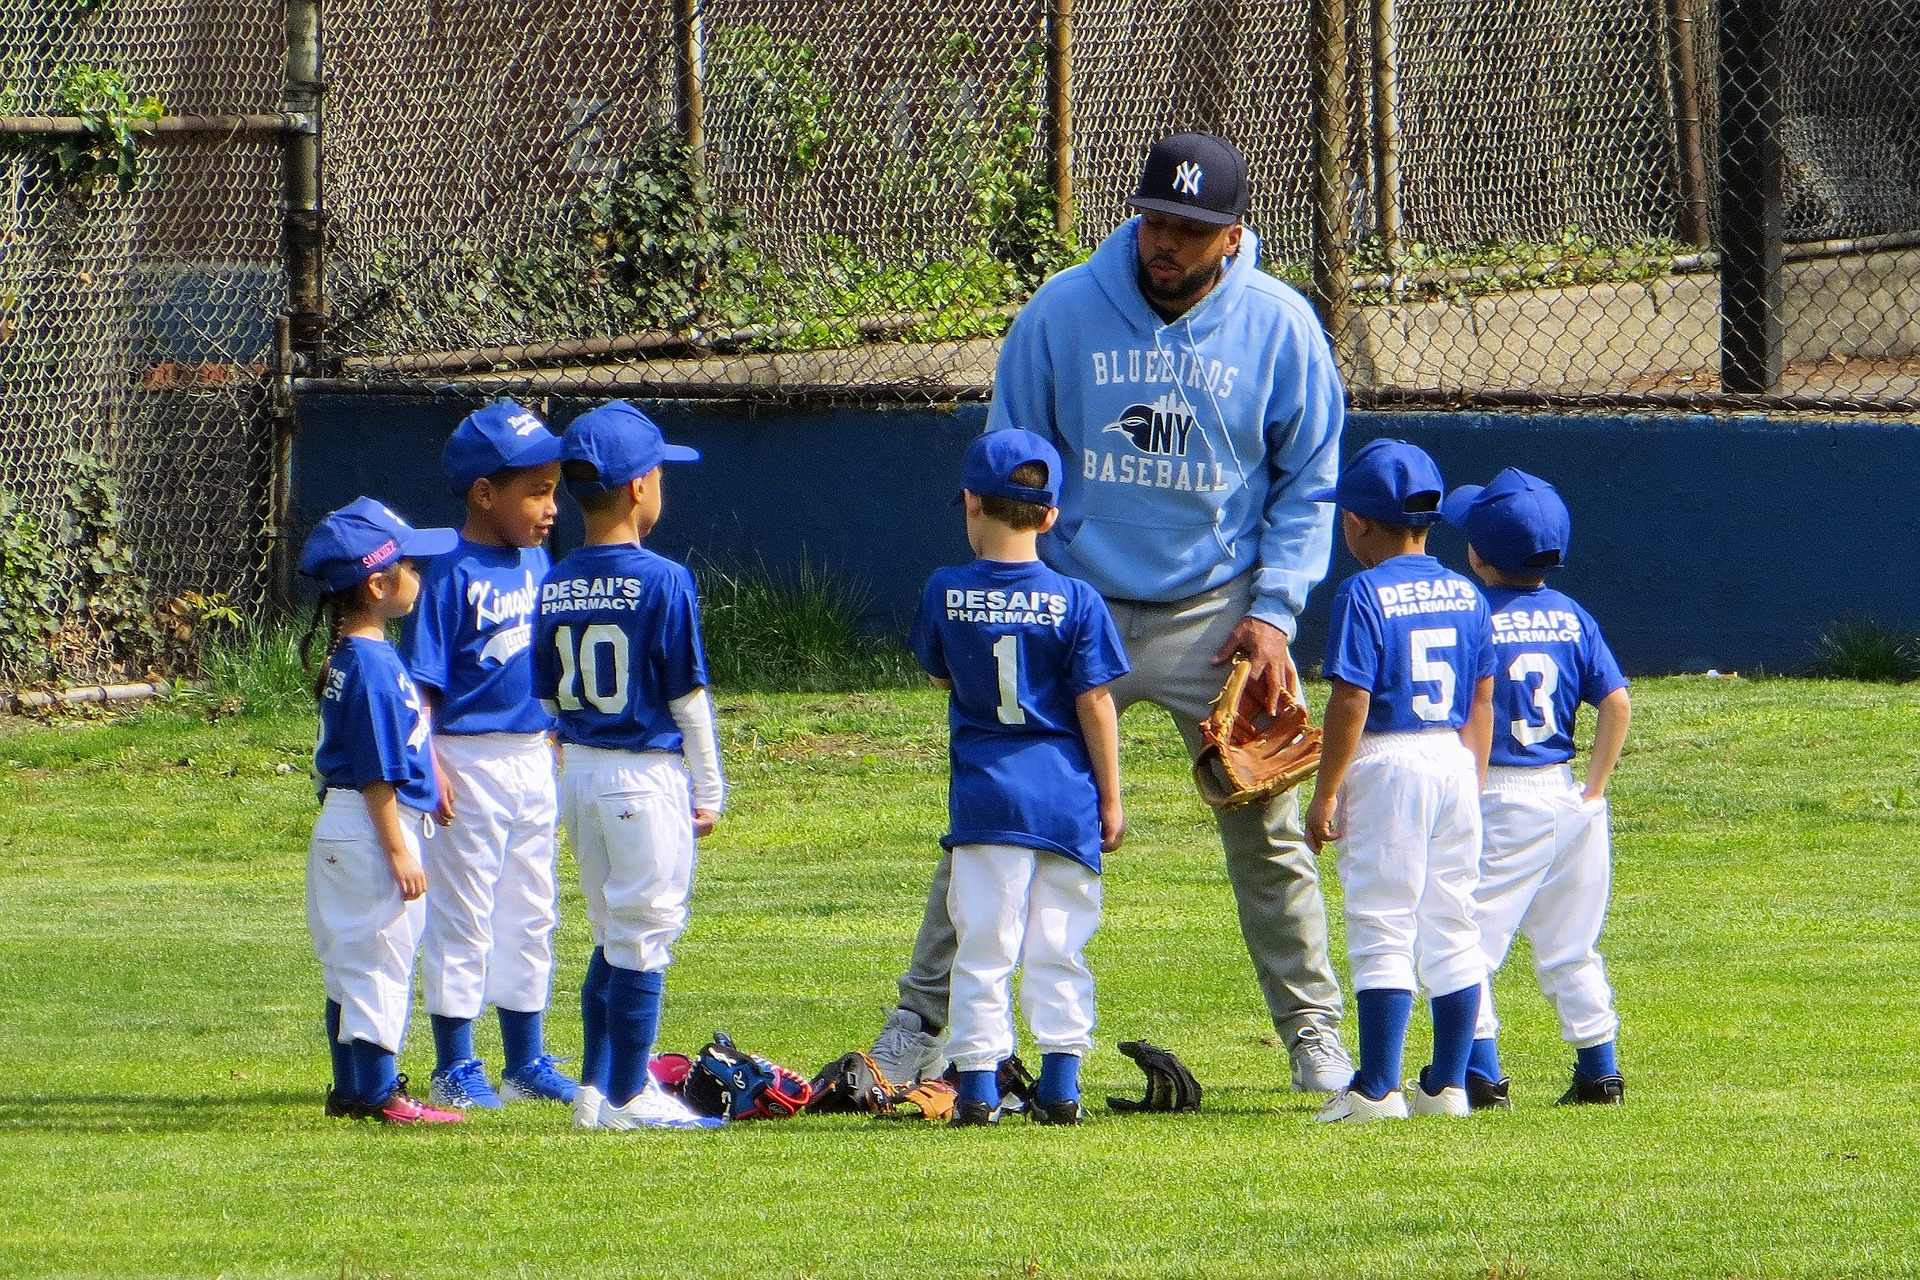 a kid's baseball team huddling with their coach wearing their blue and white baseball uniforms